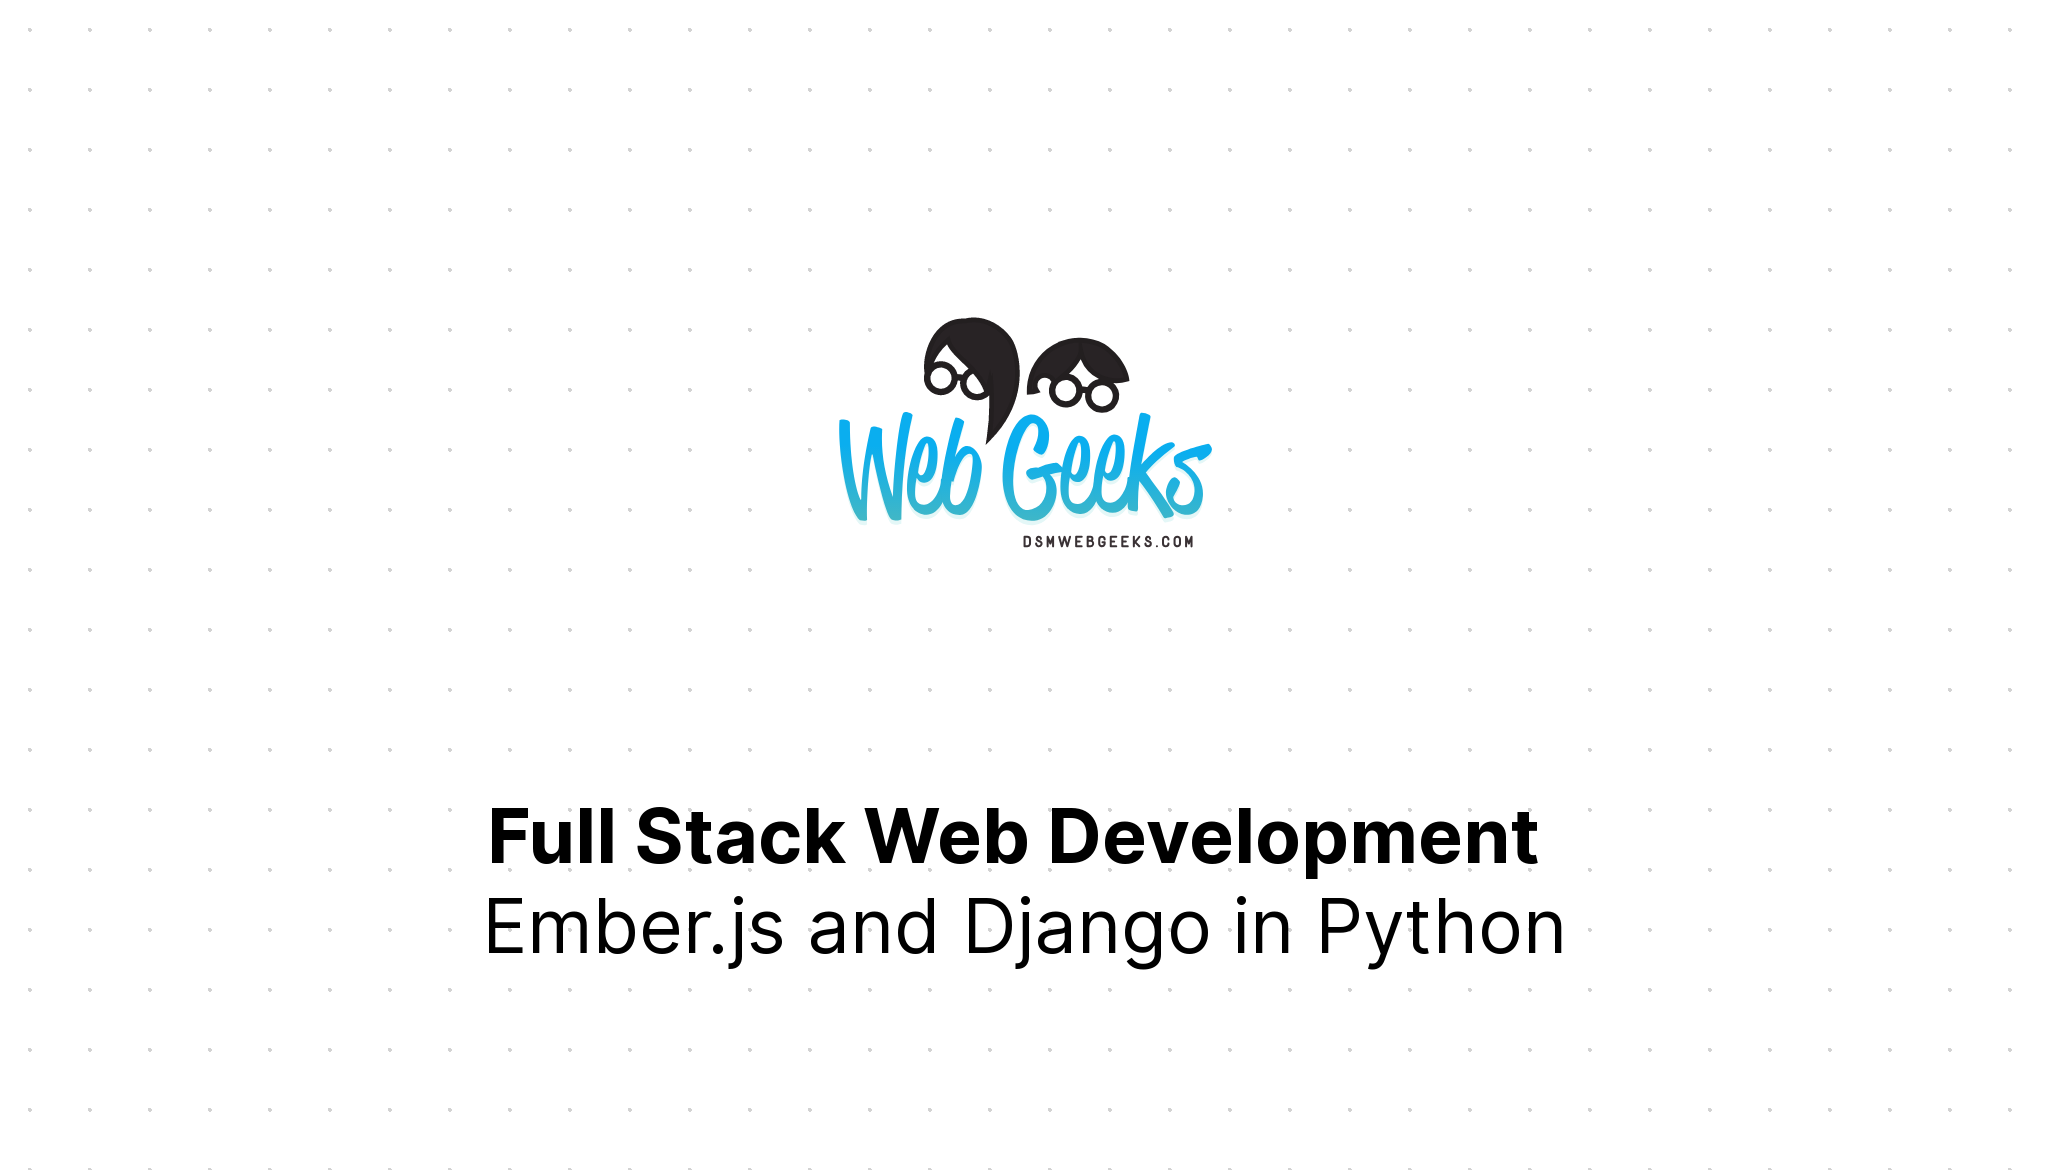 Full Stack Web Development with Ember.js and Django in Python